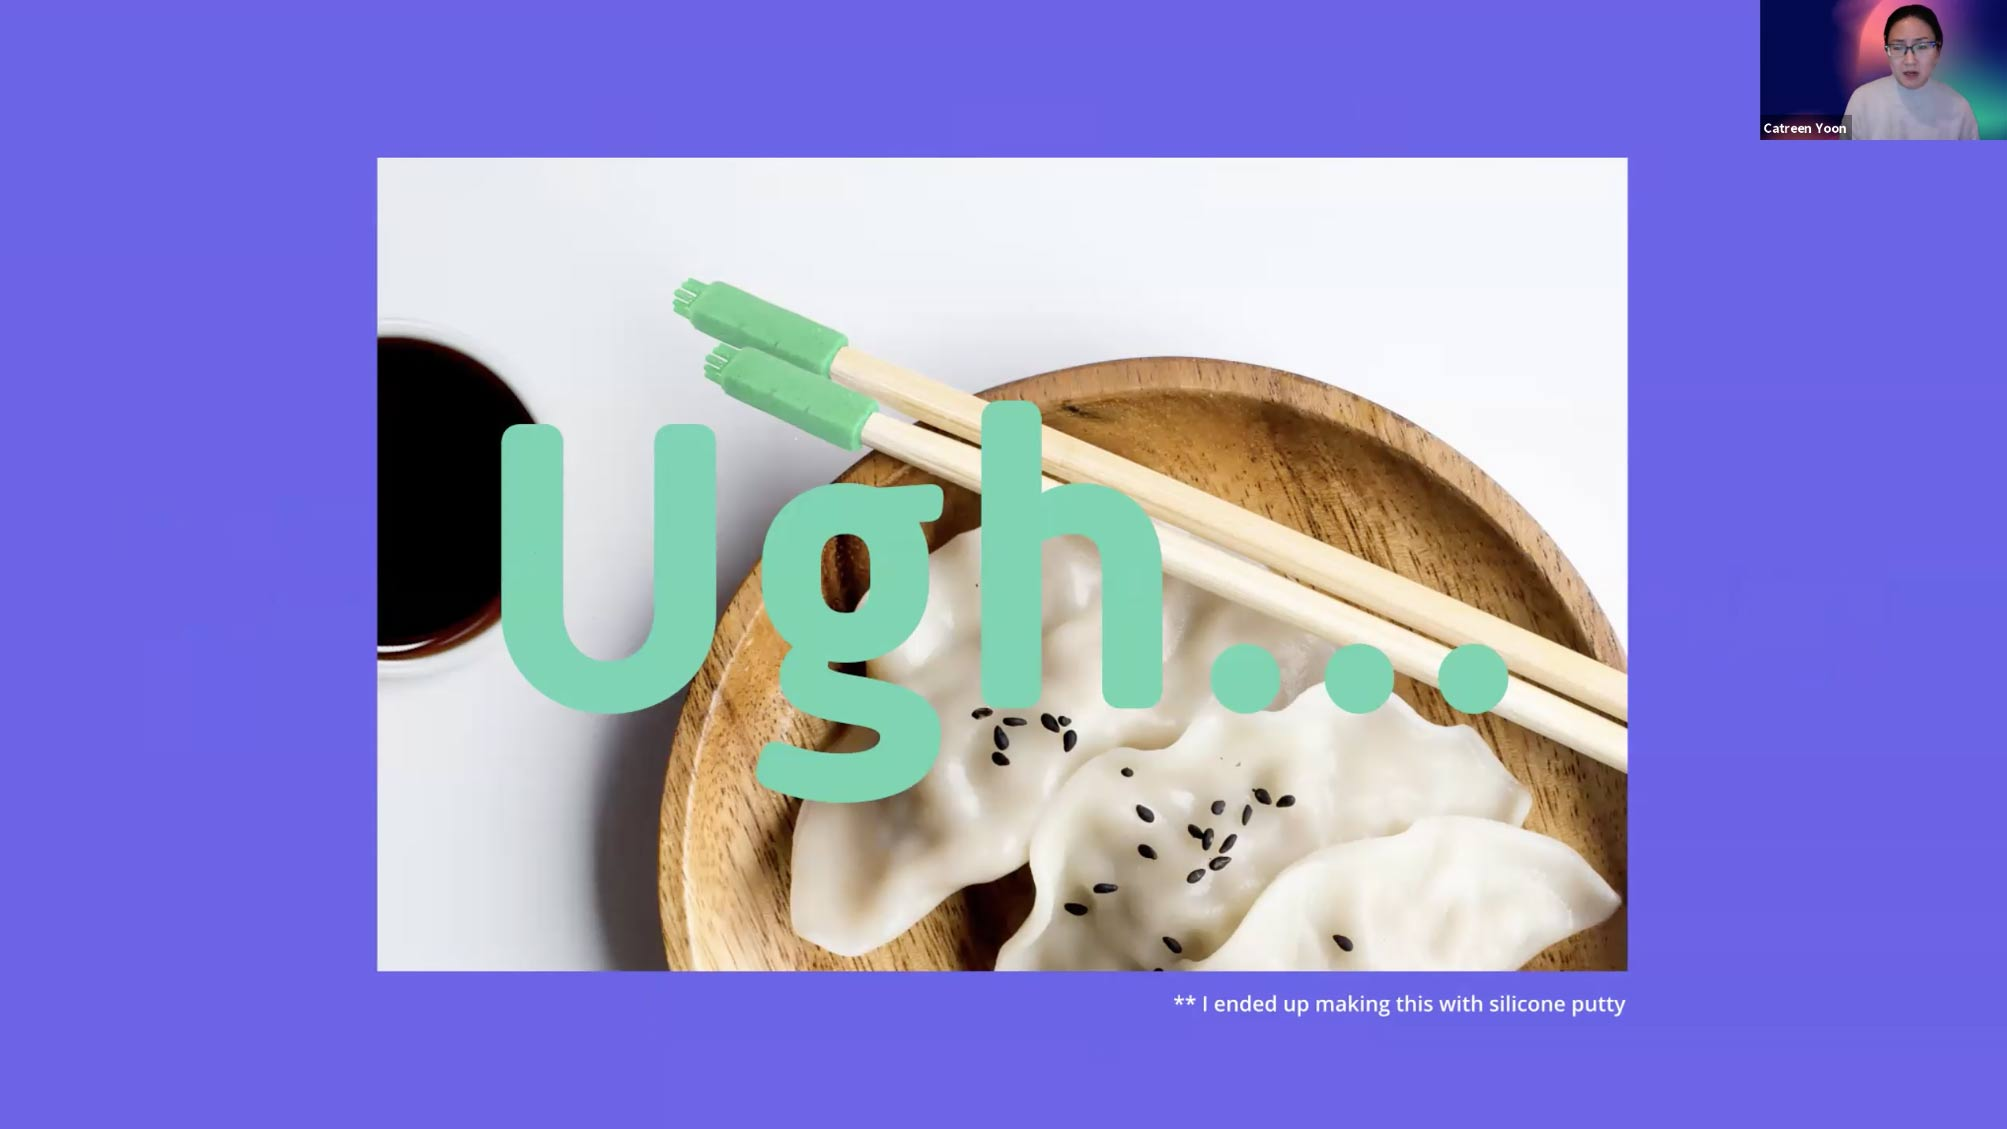 dumplings in a wooden bowl with the word ugh over the image